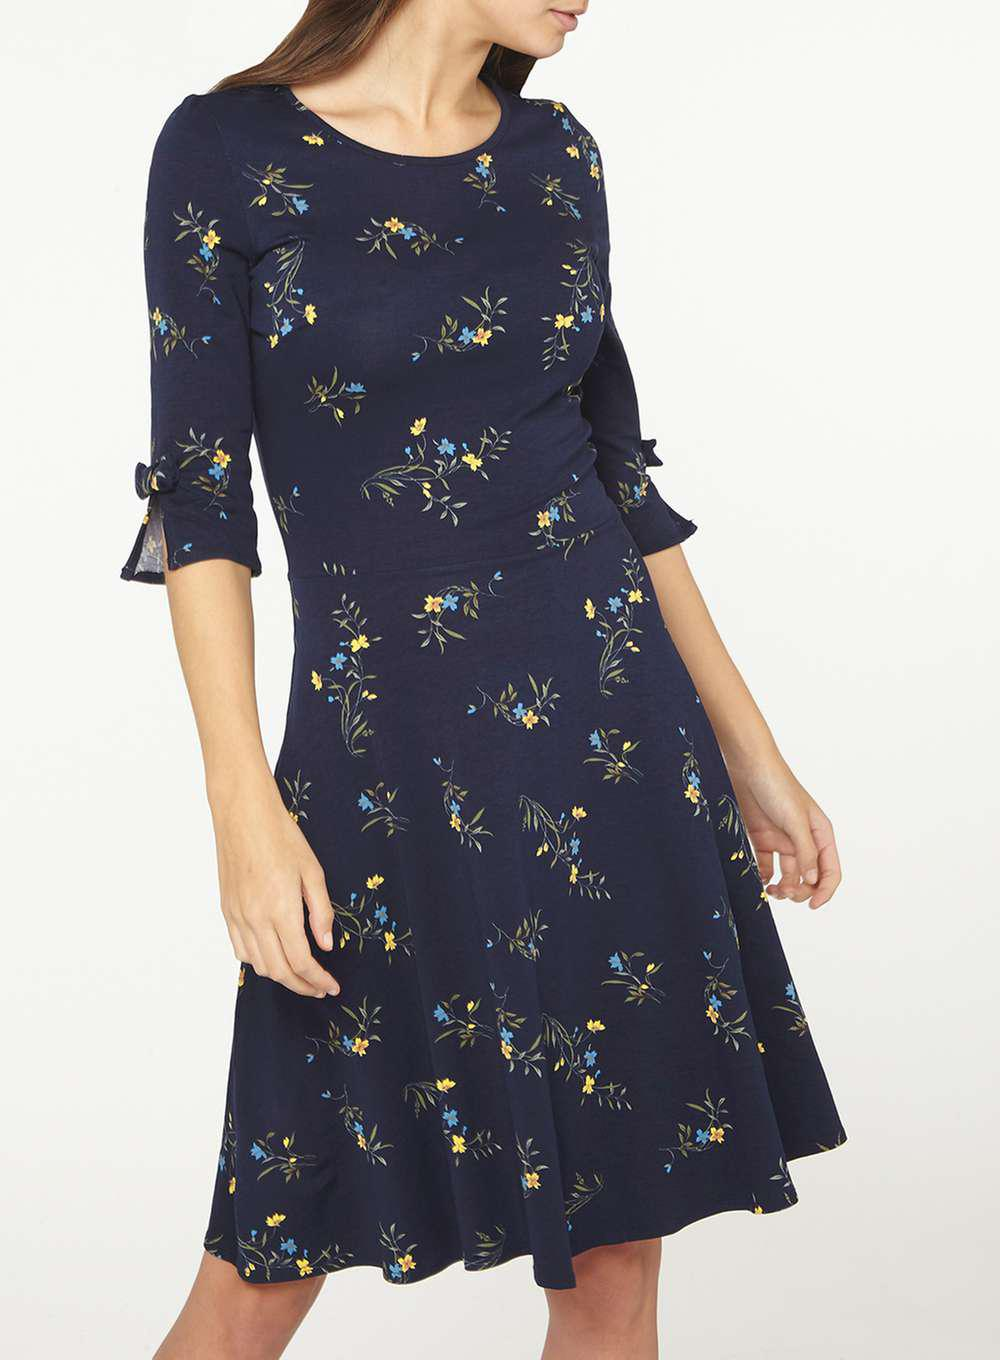 Dorothy Perkins Womens **Tall Navy Ditsy Floral Bow Sleeve Skater Dress- Visit New Sale Online Outlet Shop For Discount With Paypal HCjEm9